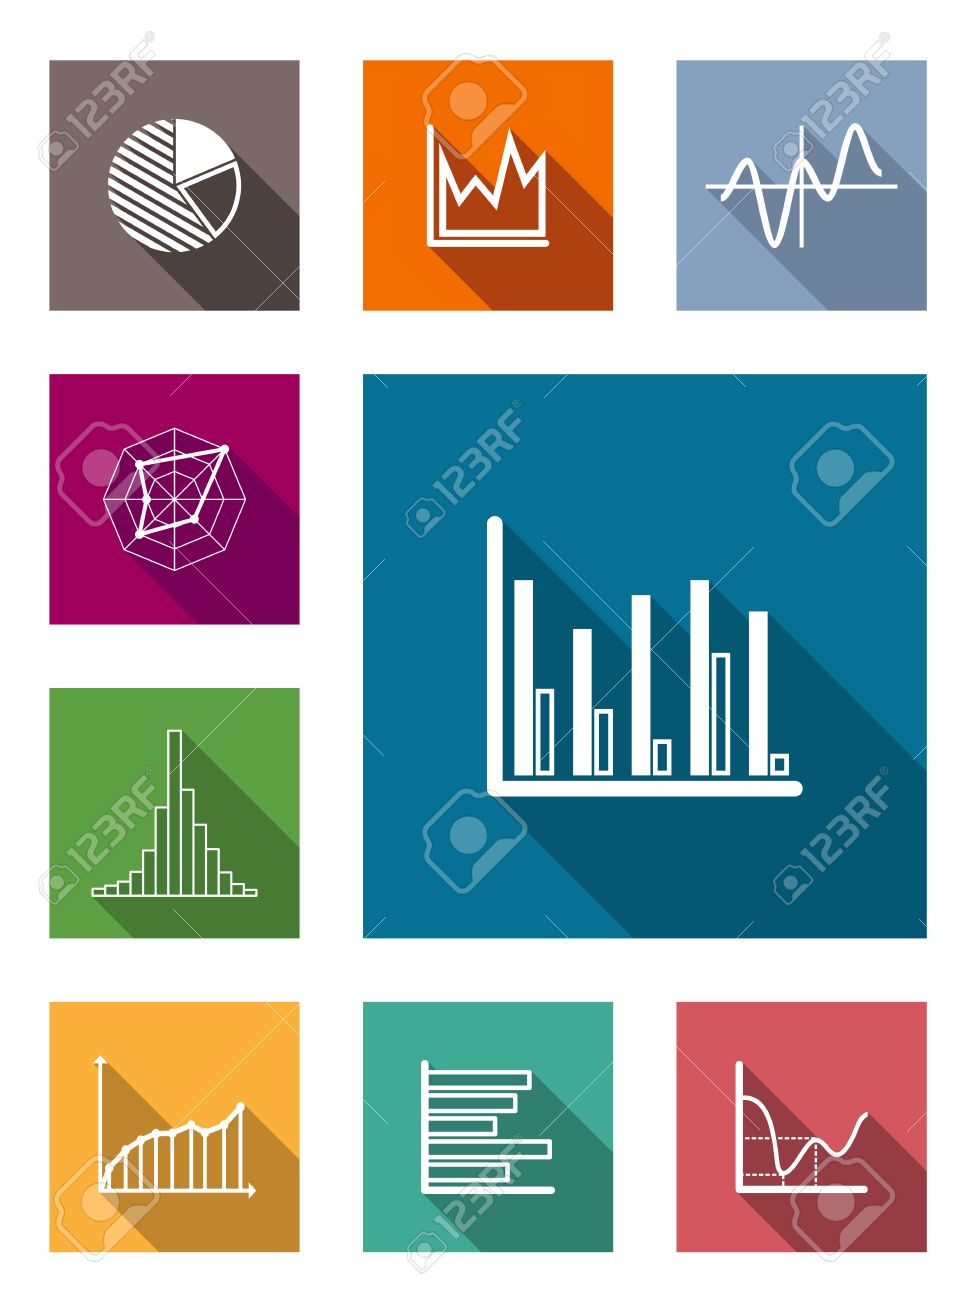 28105167 Color square flat icons with shadow for various types of diagrams as vertical and horizontal bars pi Stock Vector types of diagrams dolgular com types of diagrams at suagrazia.org